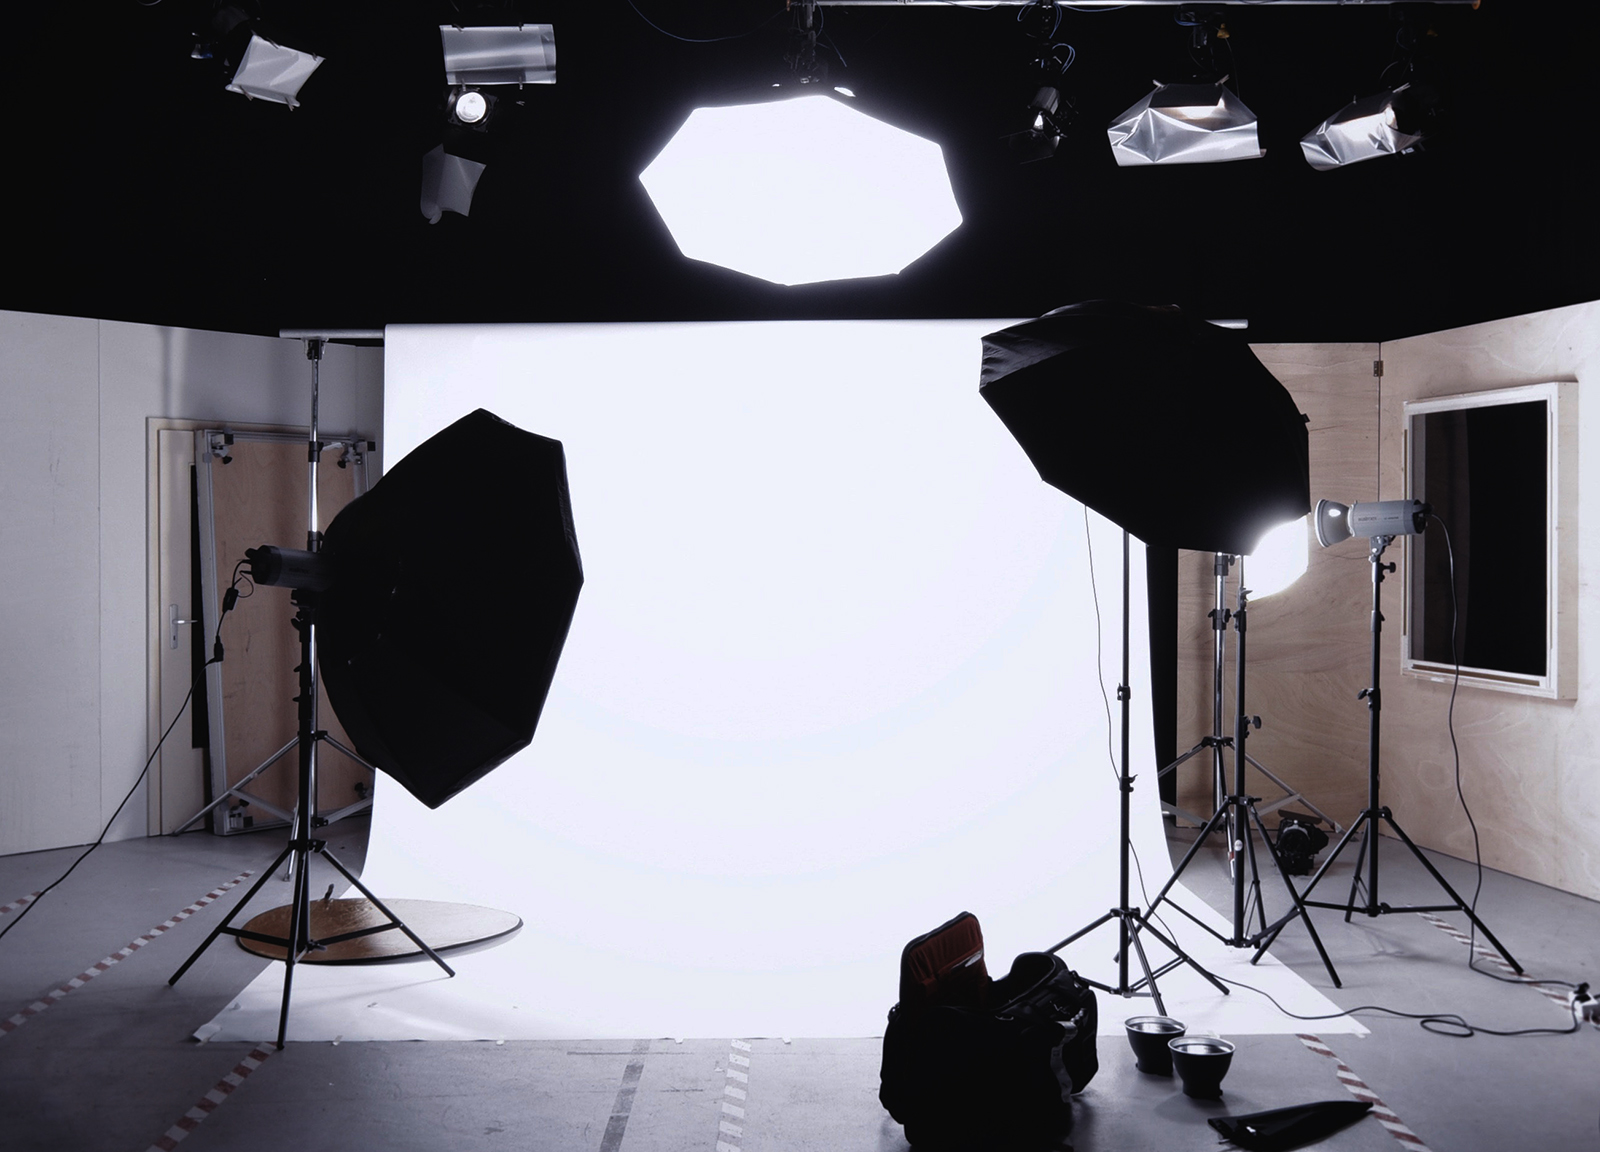 A white backdrop in a photography studio